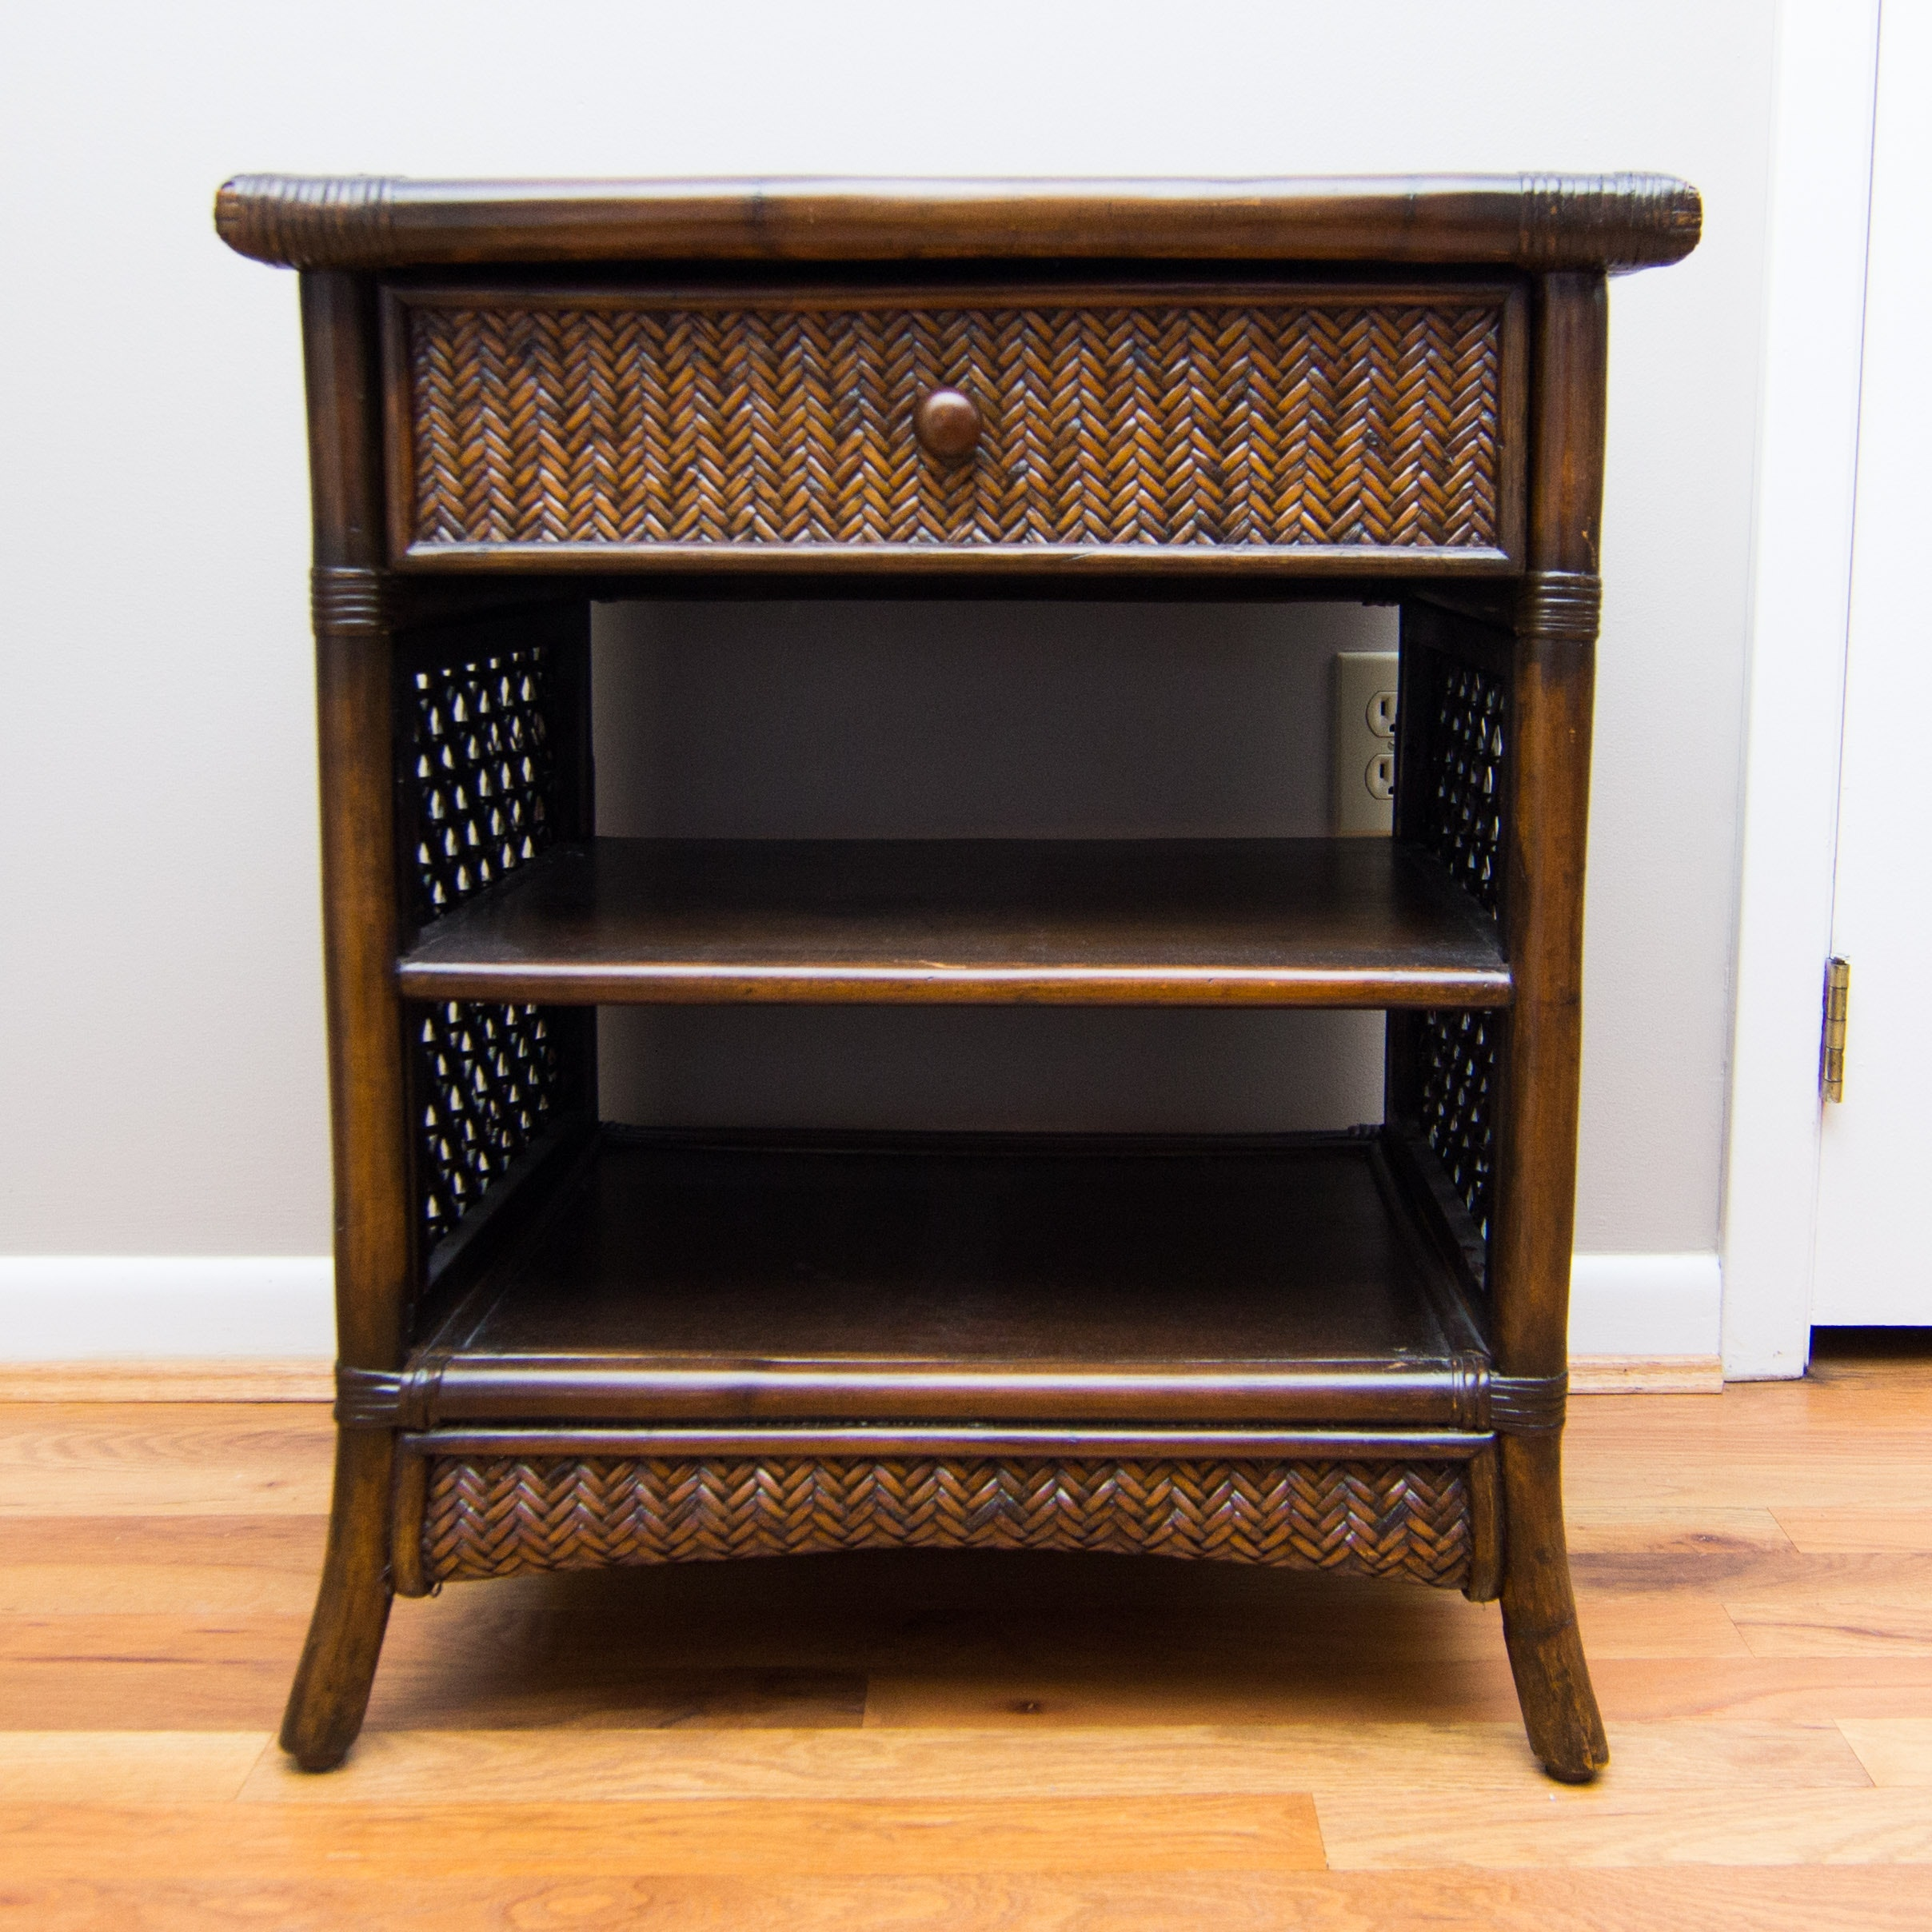 Pier 1 Imports Bamboo And Wicker End Table ...